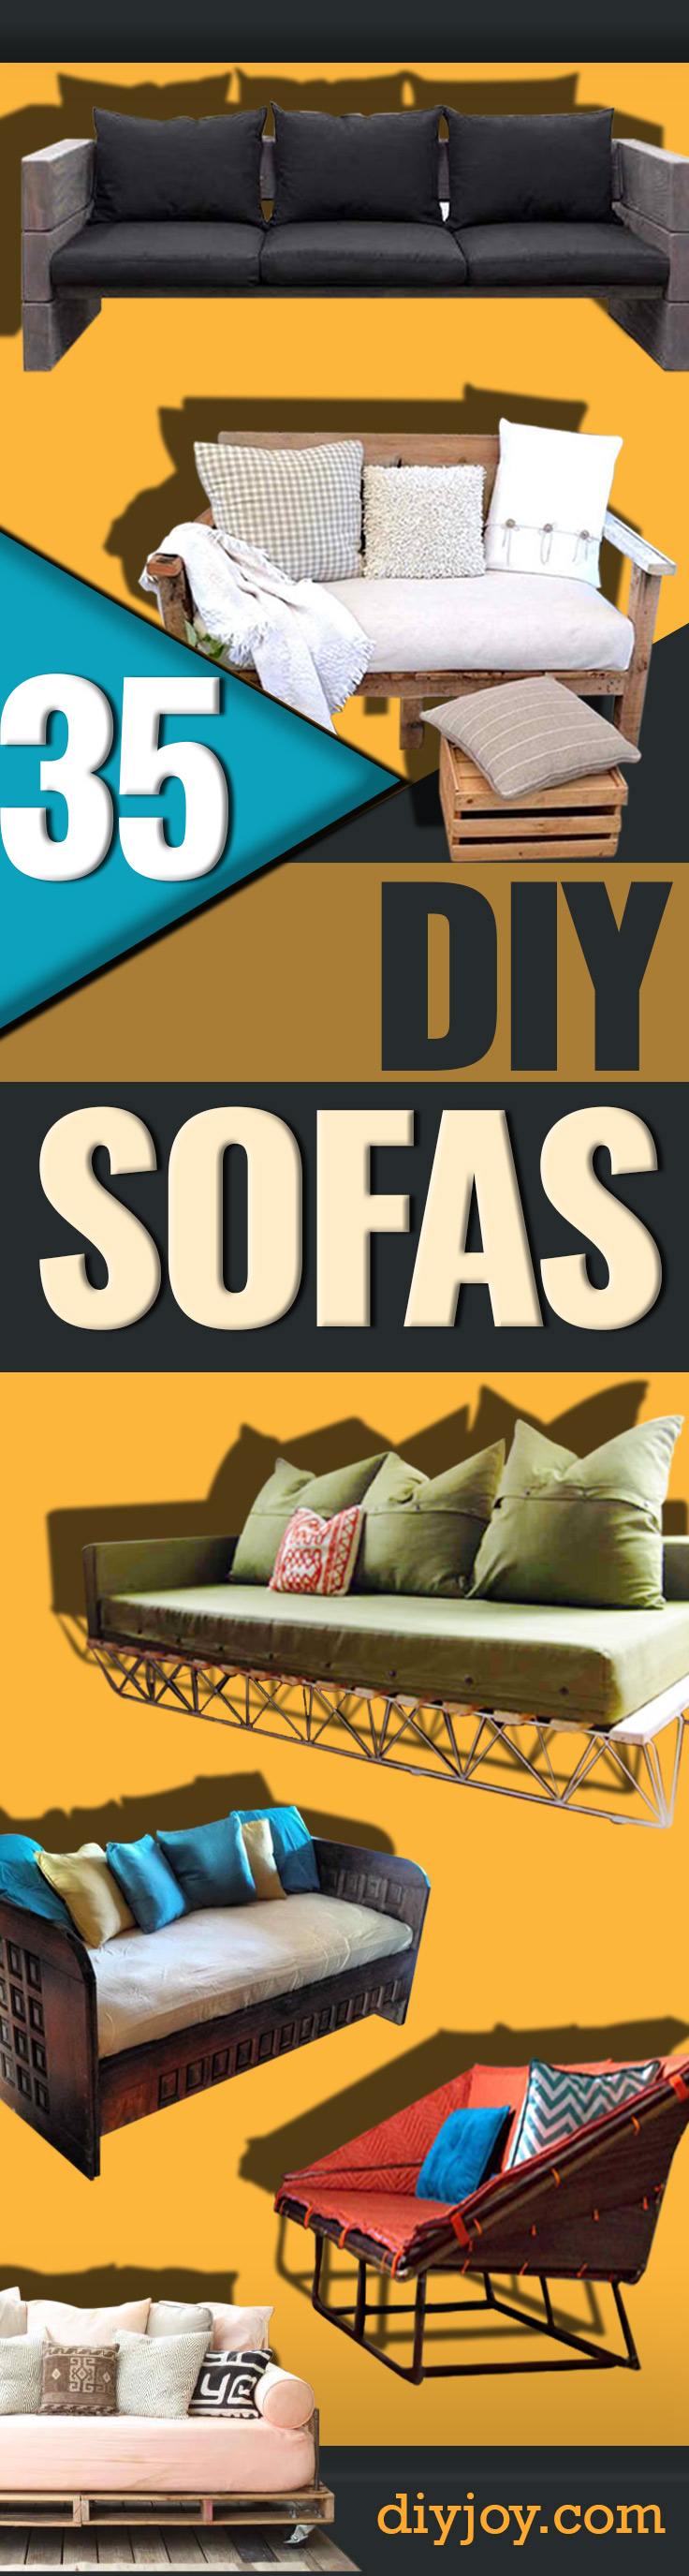 Diy sofa plans build your own couch build your own couch with - Diy Sofas And Couches Easy And Creative Furniture And Home Decor Ideas Make Your